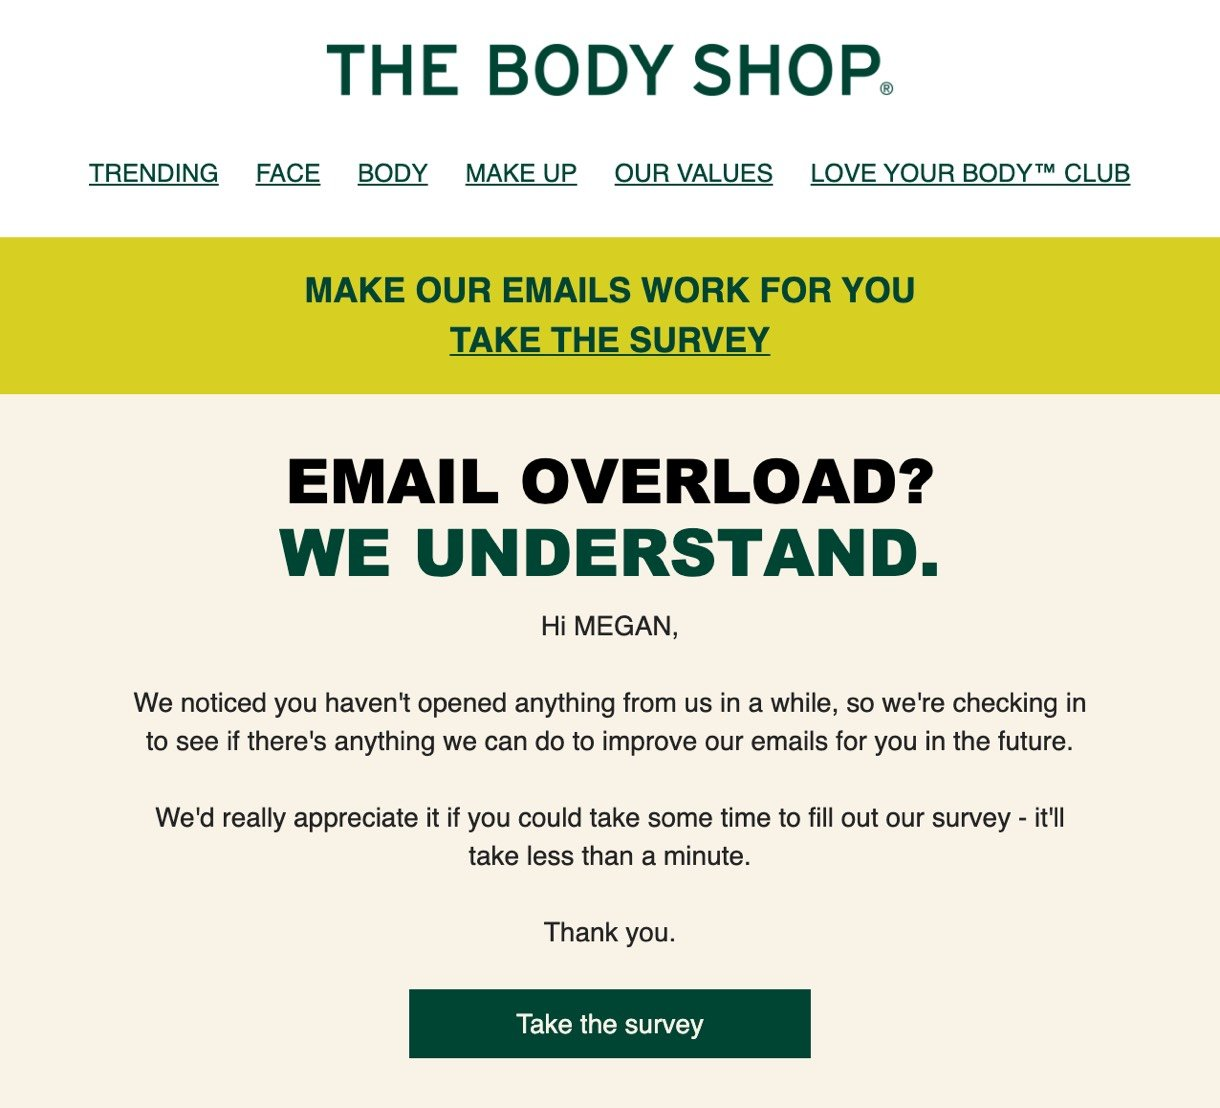 The Body Shop personalization example